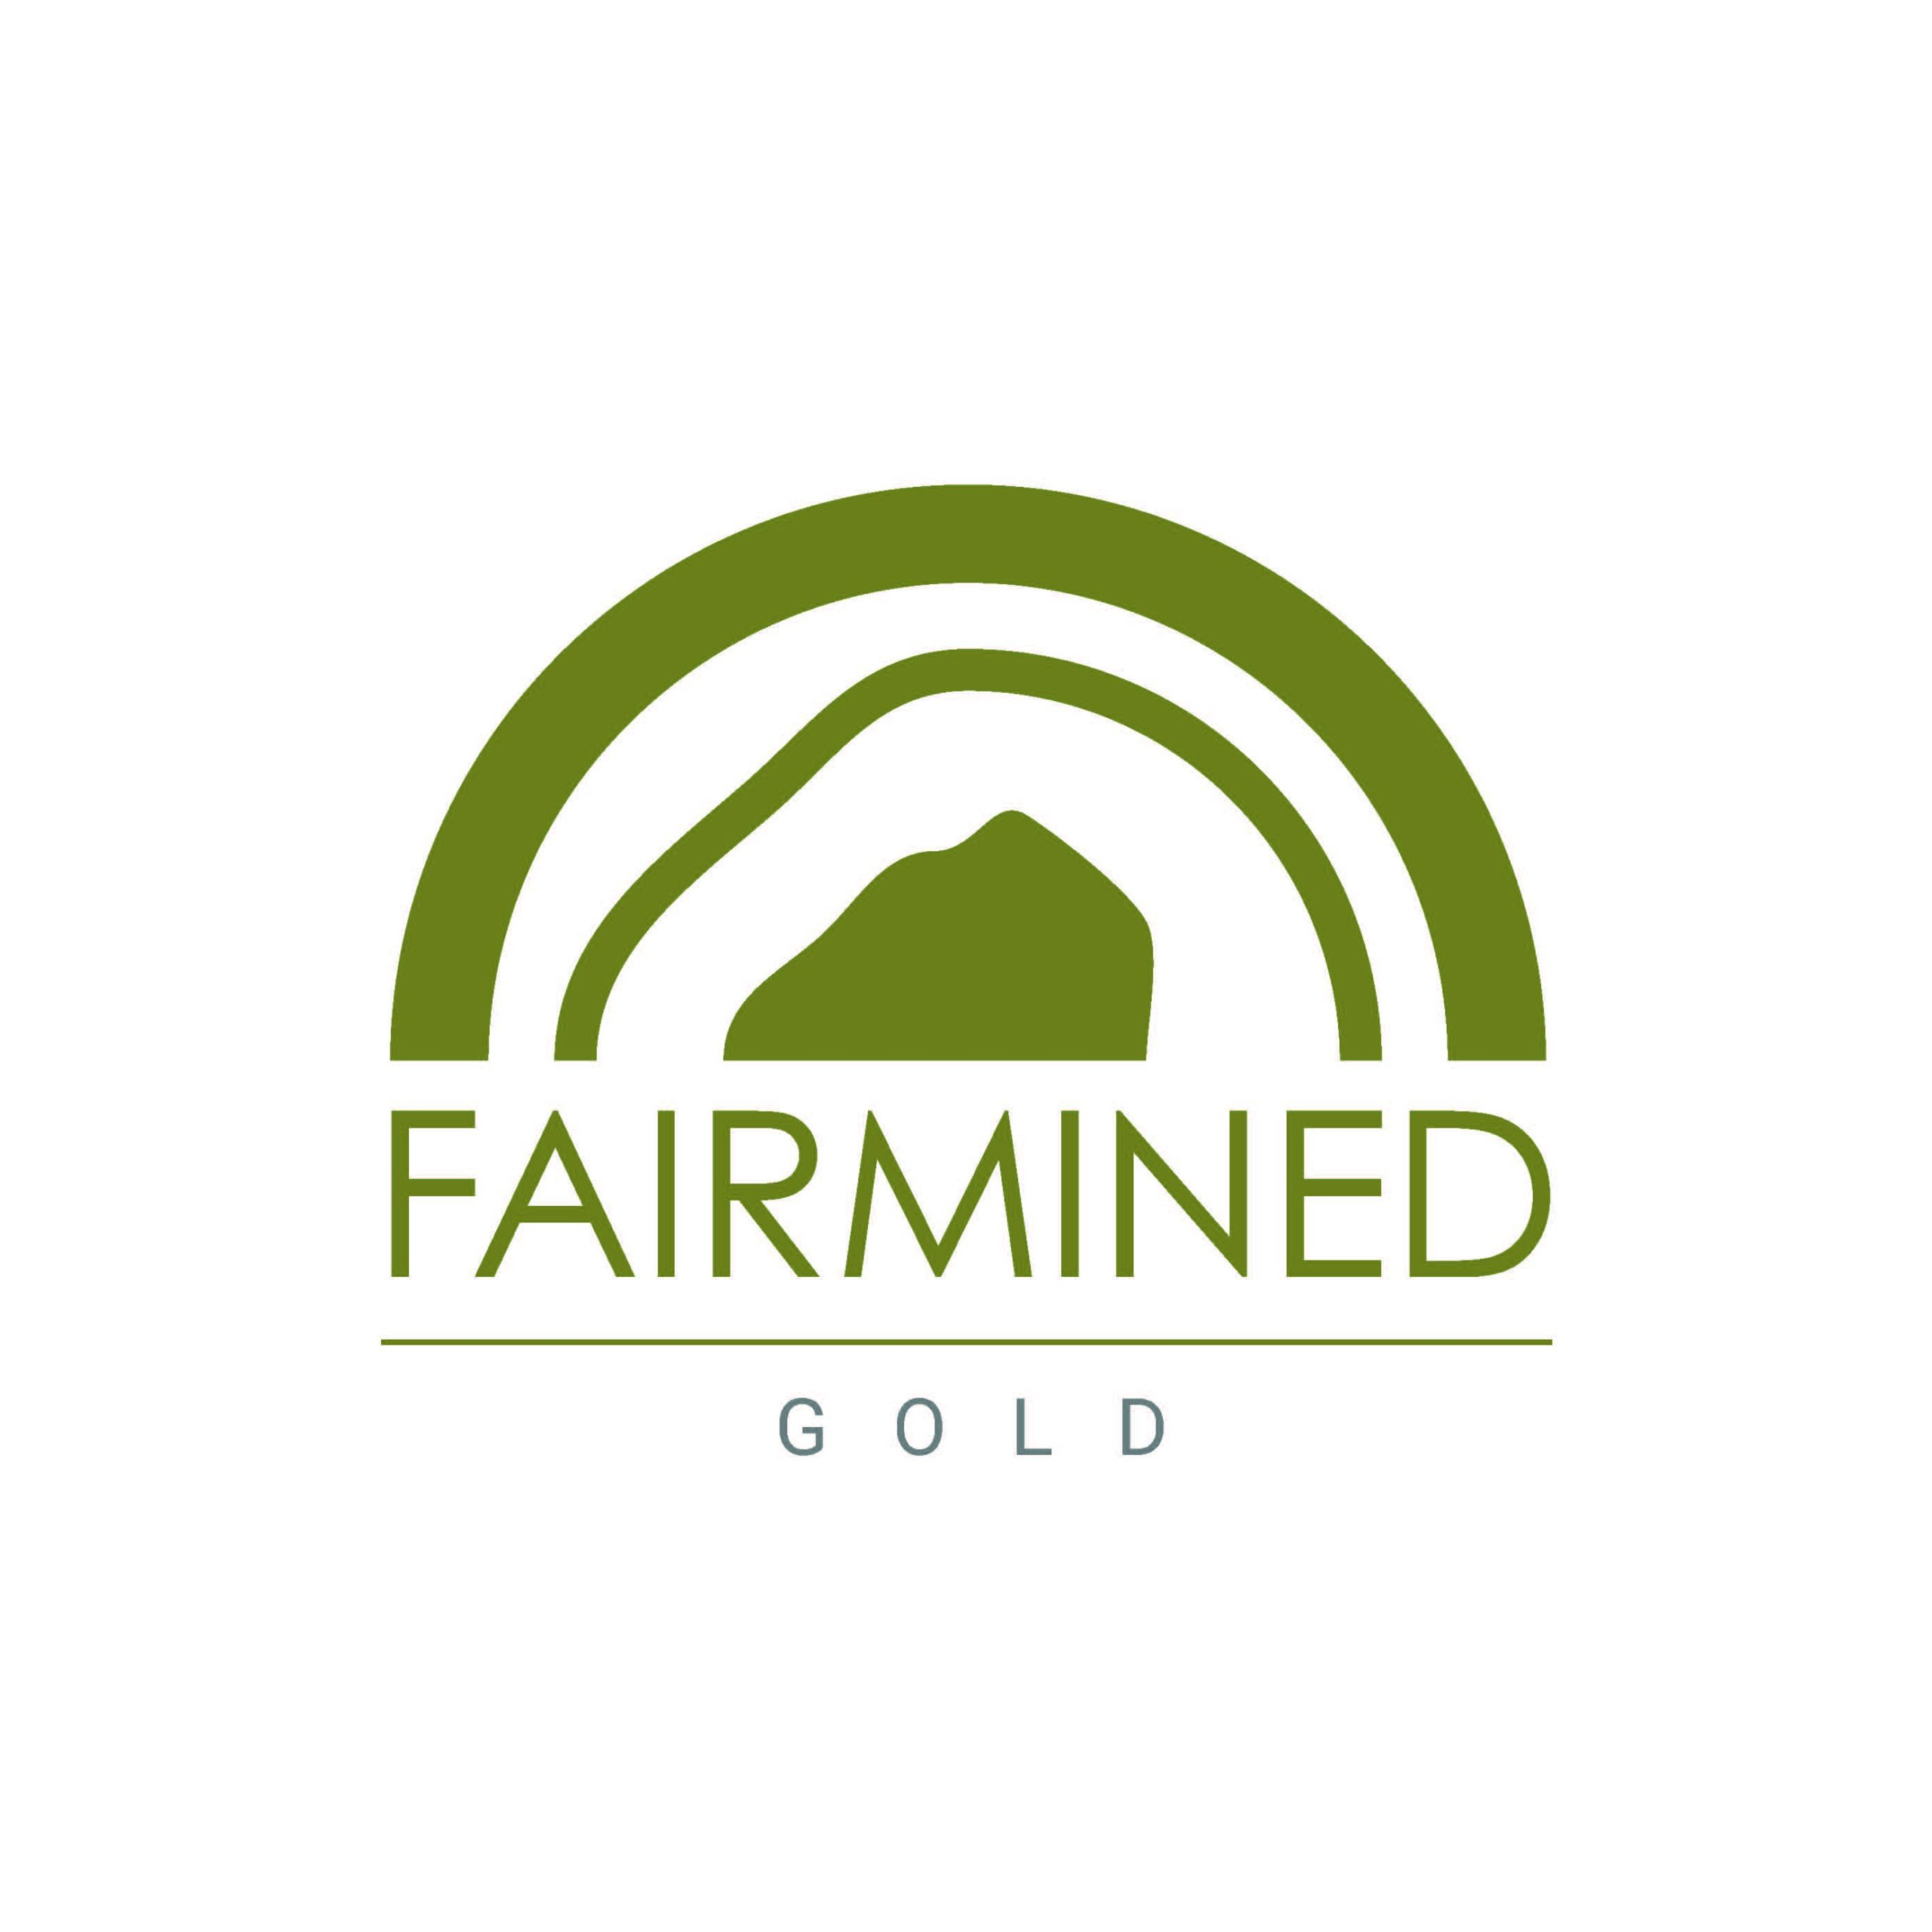 Fairmined gold logo